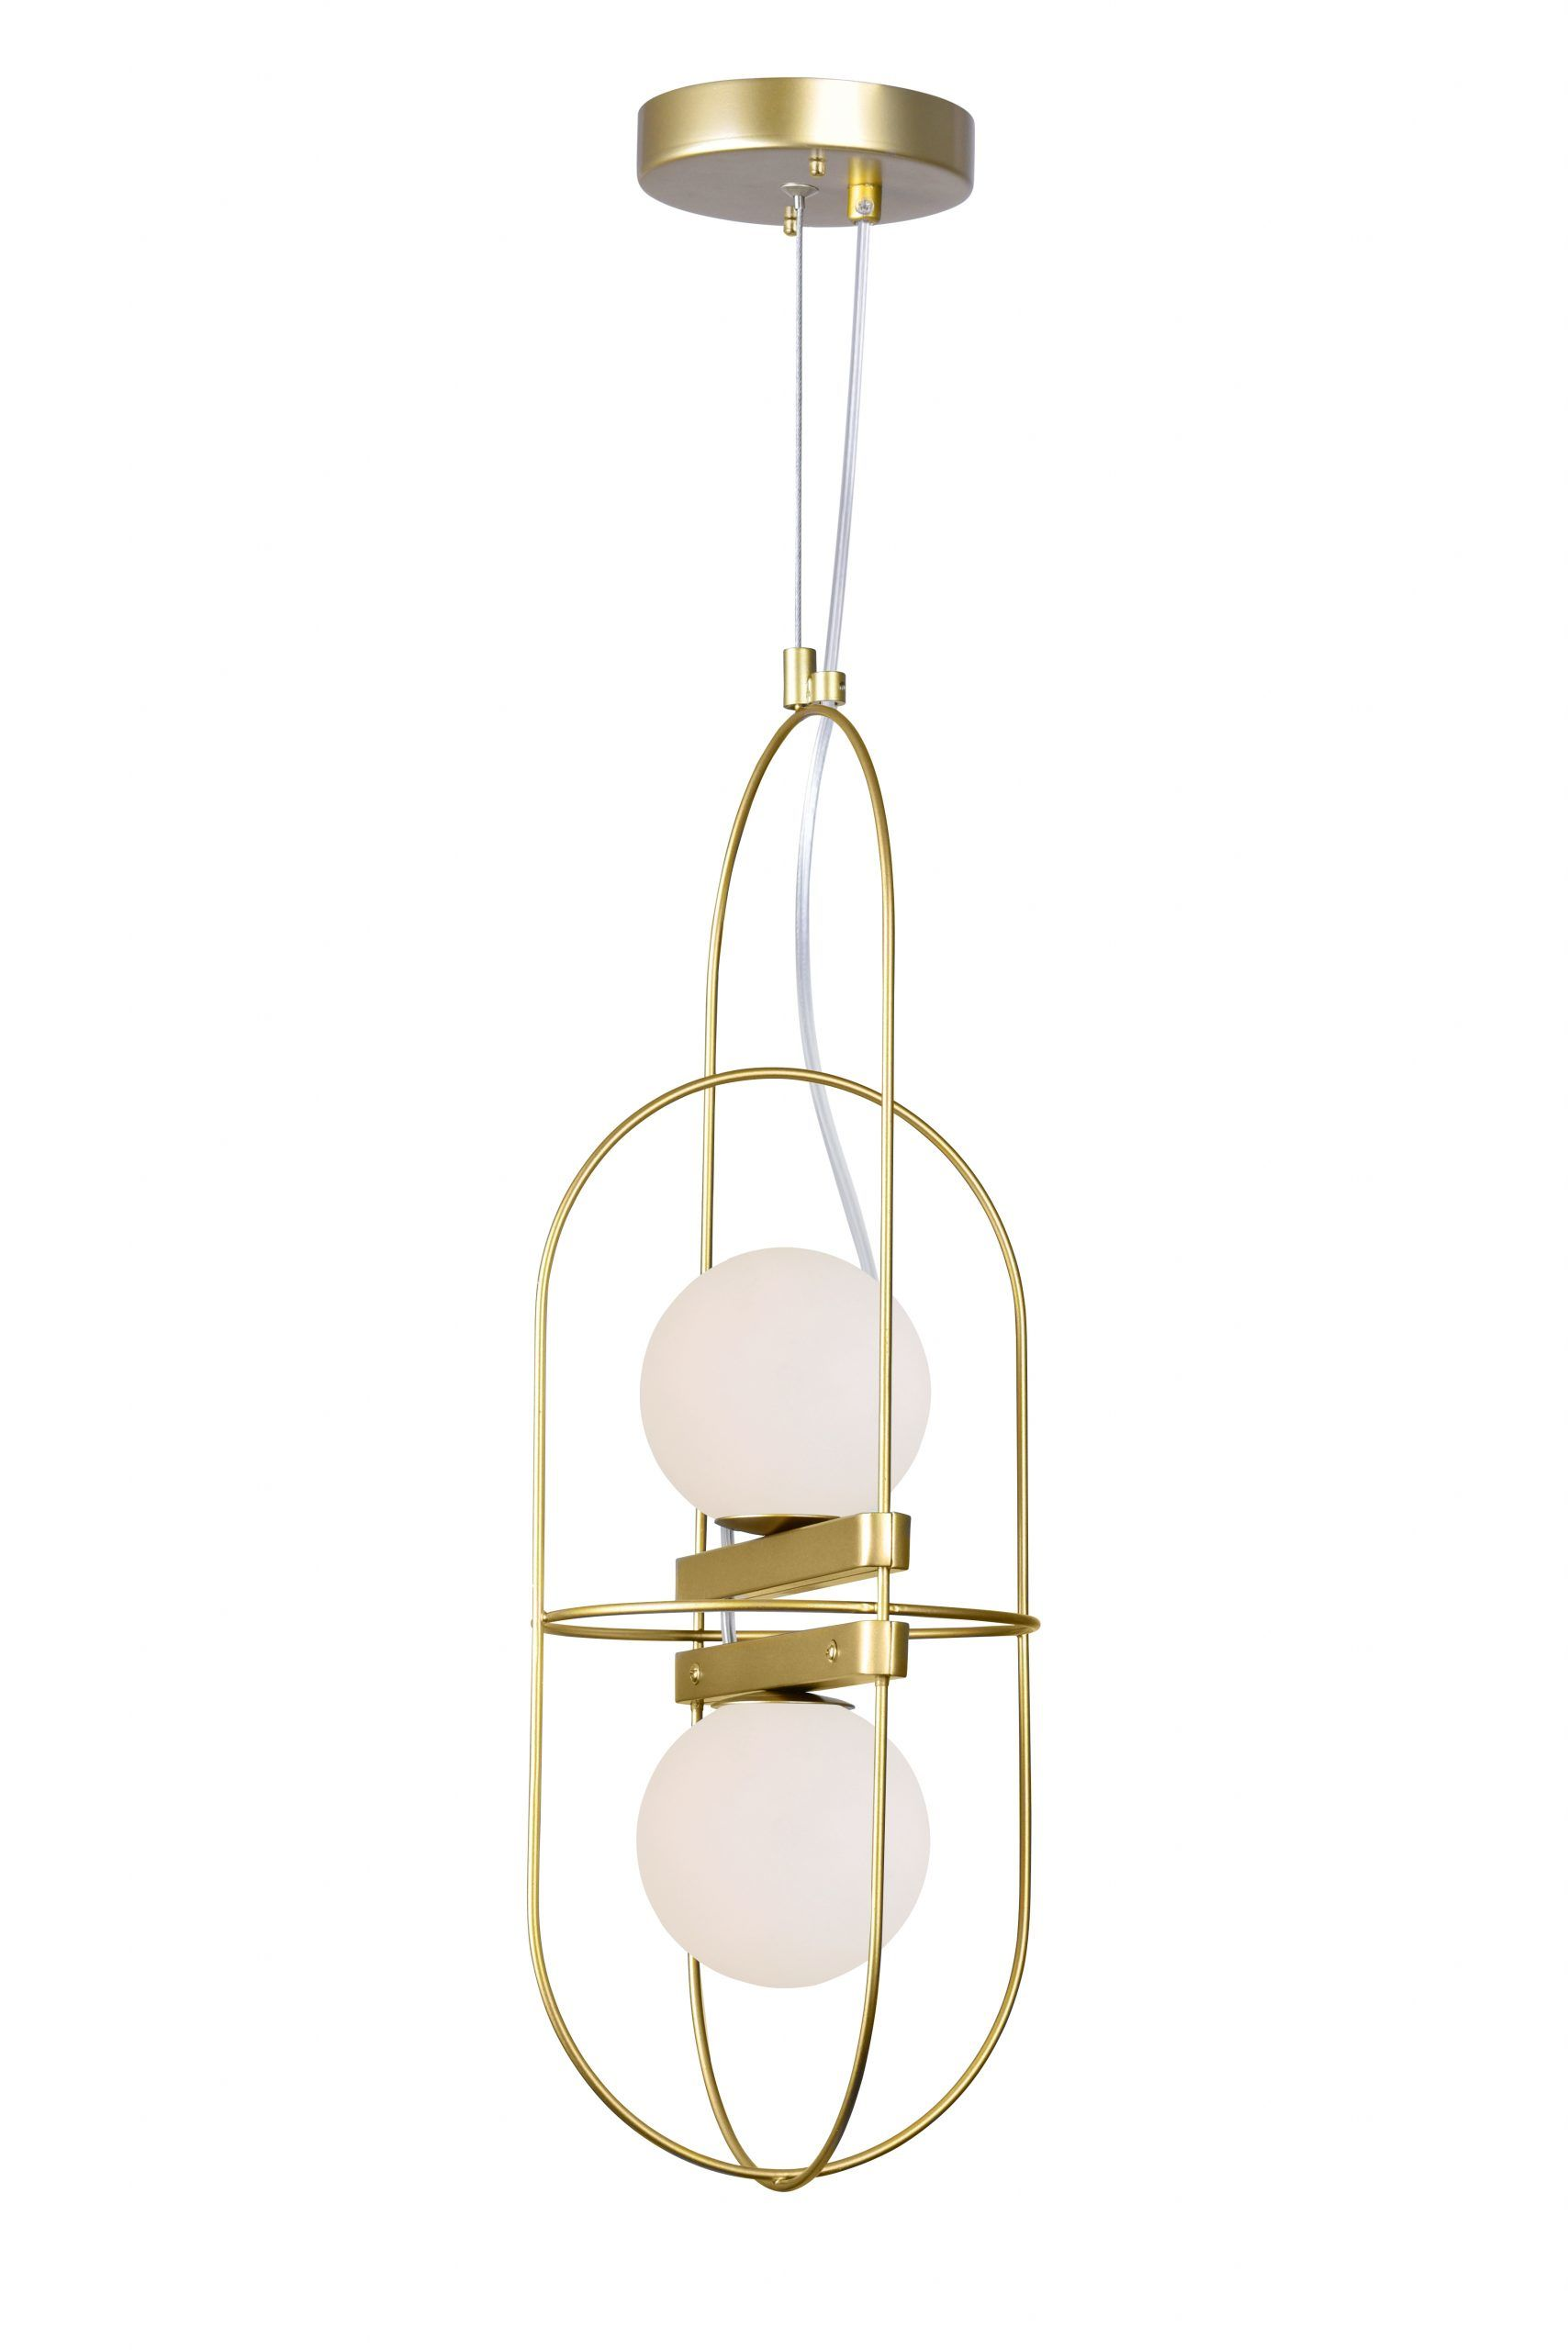 2 Light Pendant with Medallion Gold Finish